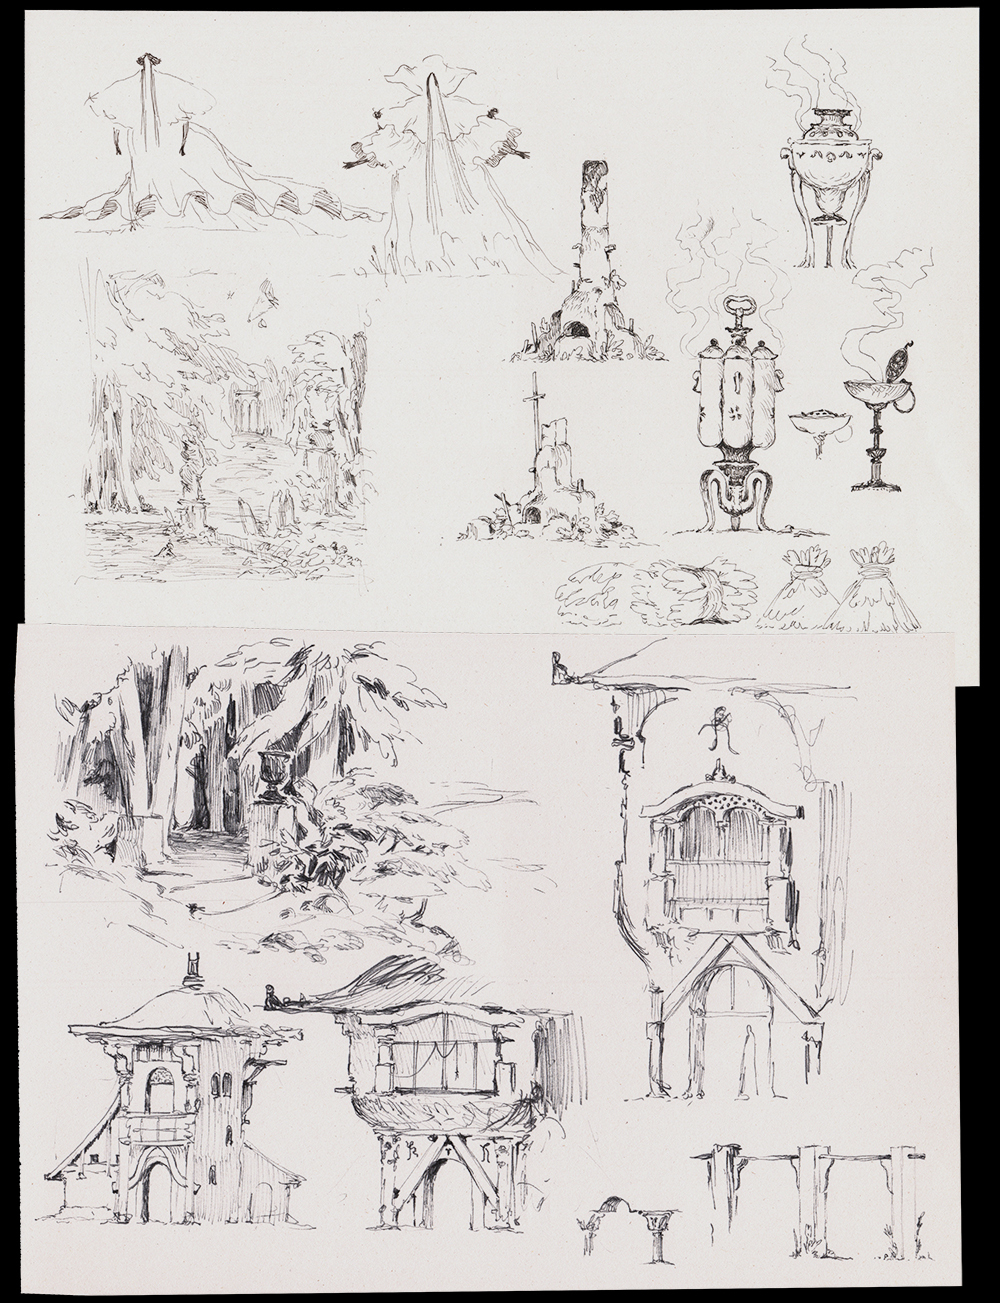 Book of Travels Story Guide + Walkthrough - Overview - Sketches from the Attic - CBF2FD1